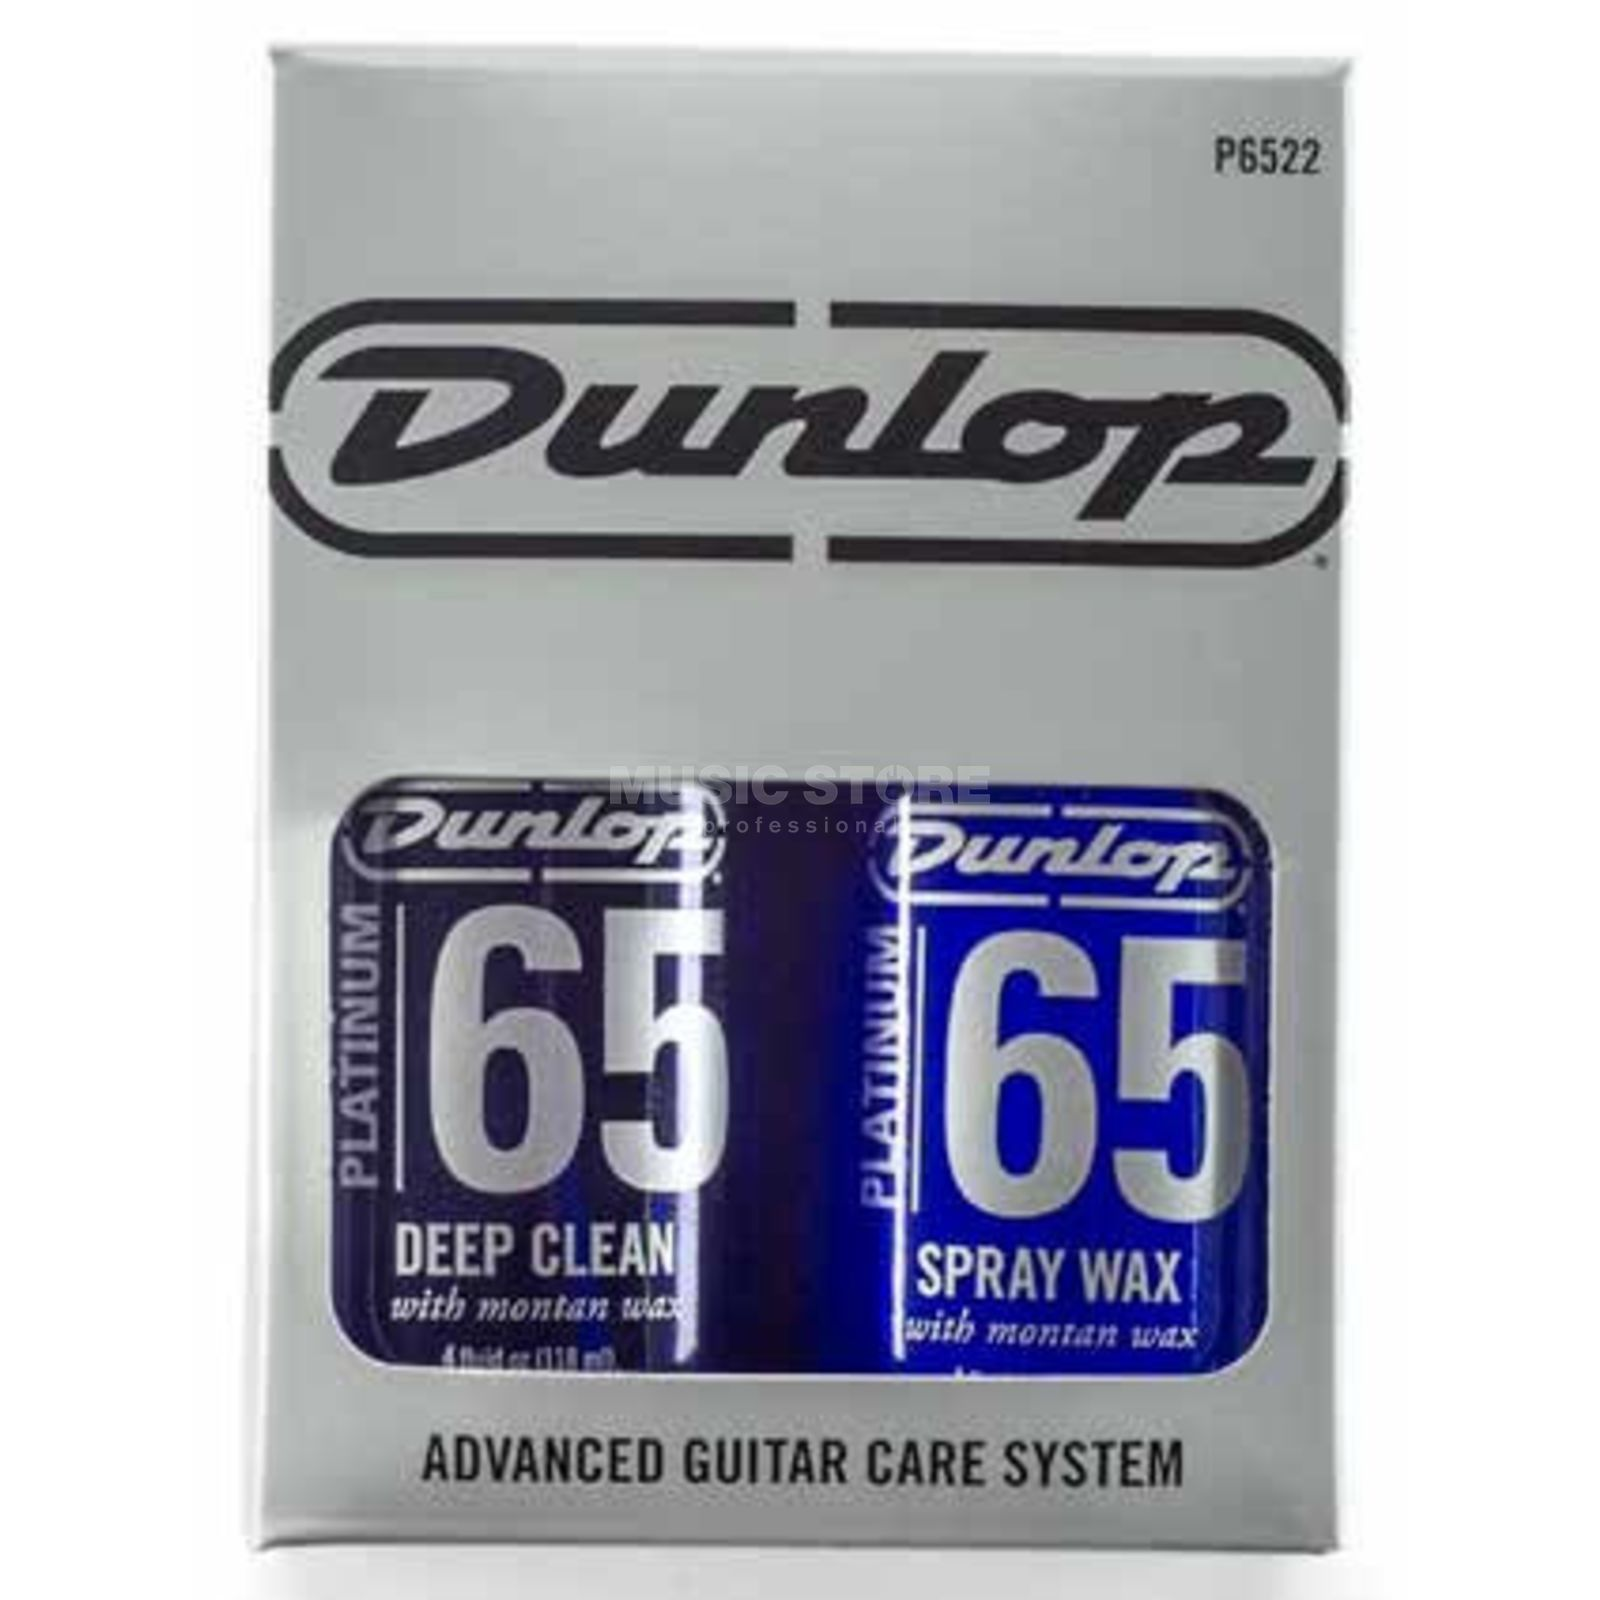 Dunlop Platinum 65 Advanced Guitar Care System Deep Clean, Spray Wax, 2 Tücher, P65 22 Product Image